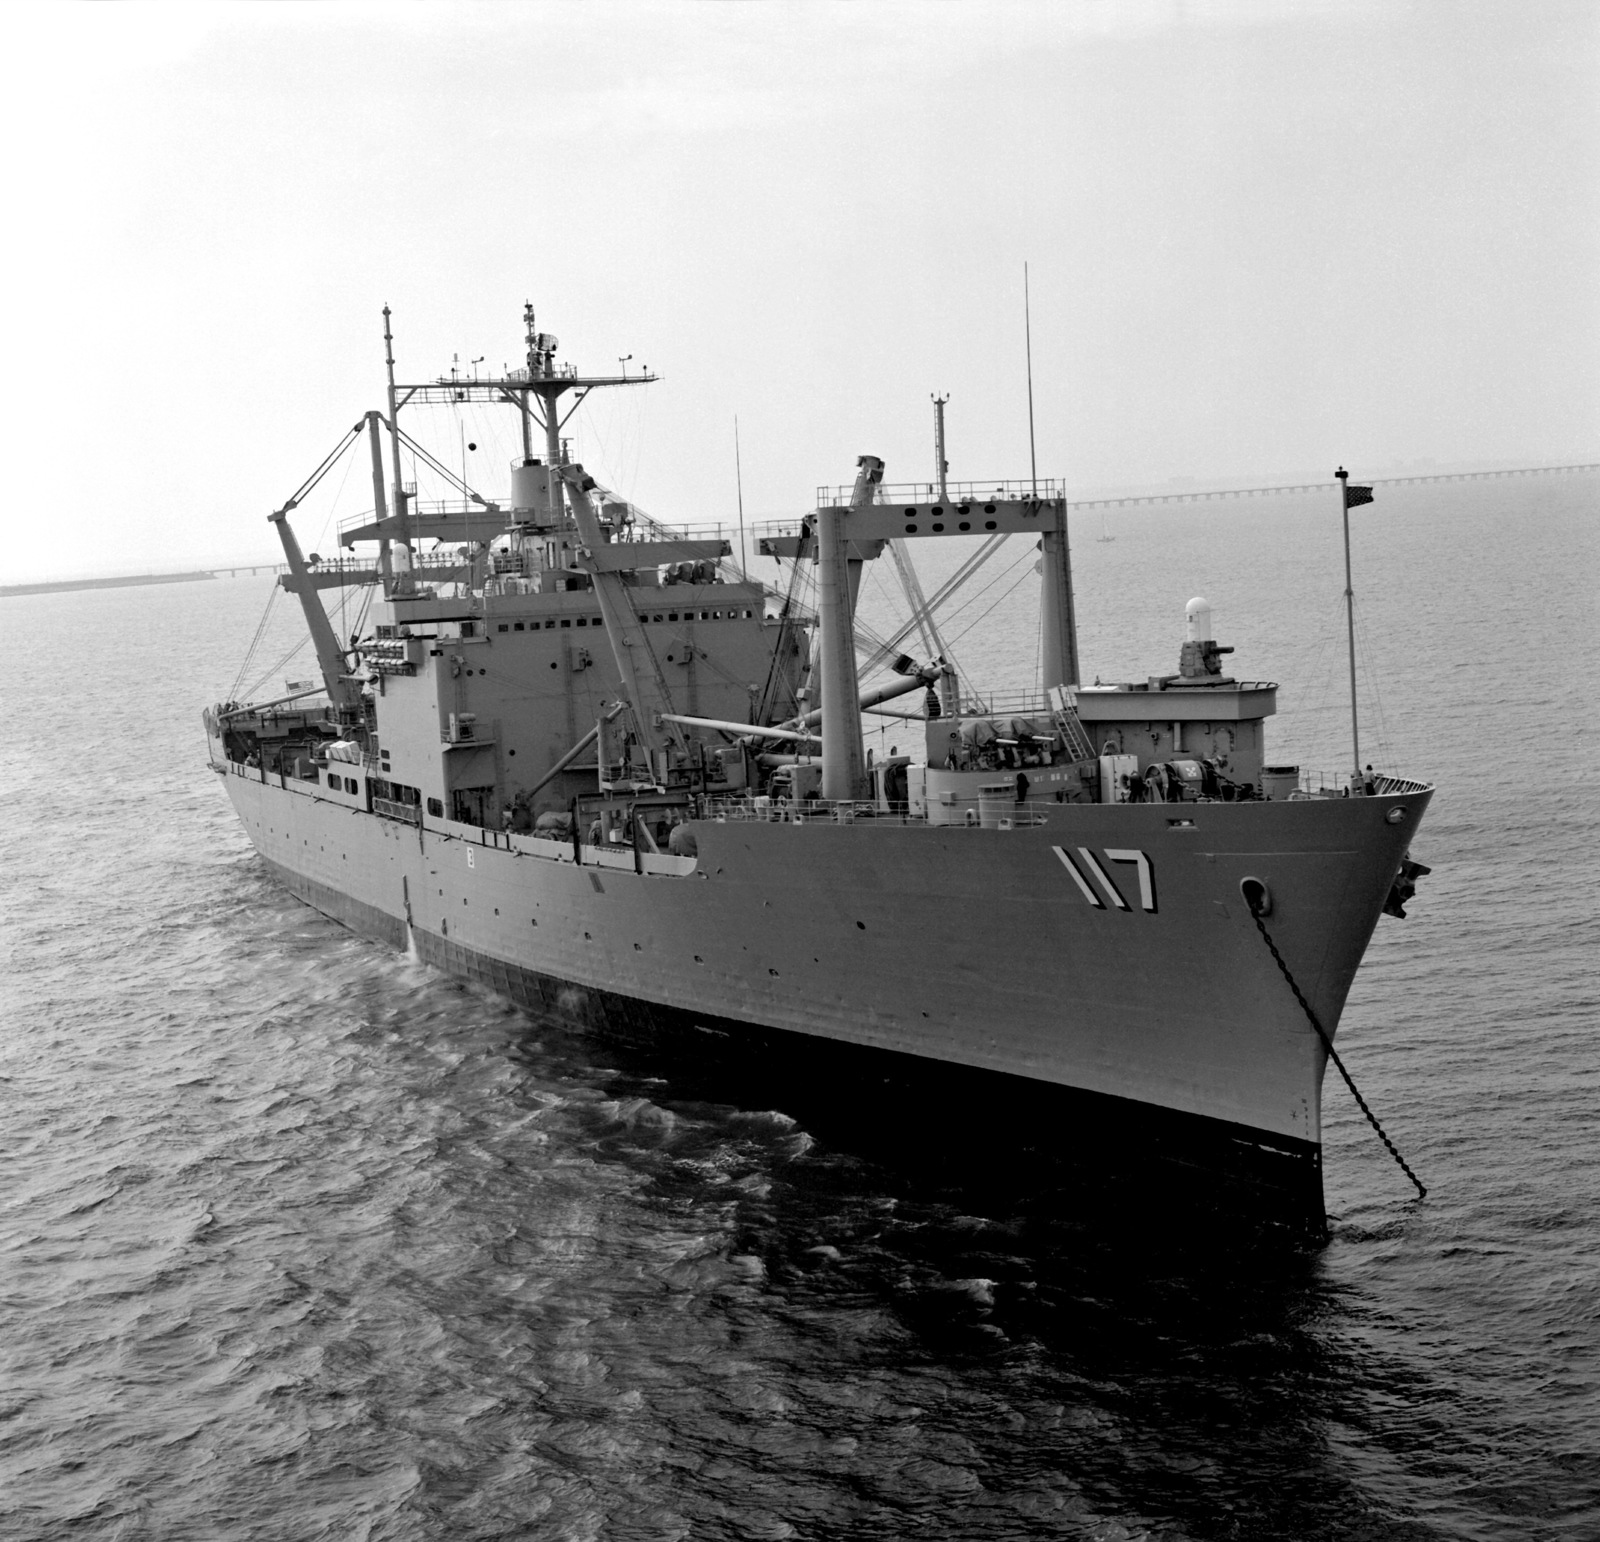 A starboard bow view of the amphibious cargo ship USS EL PASO (LKA-117) at anchor off the Virginia Capes